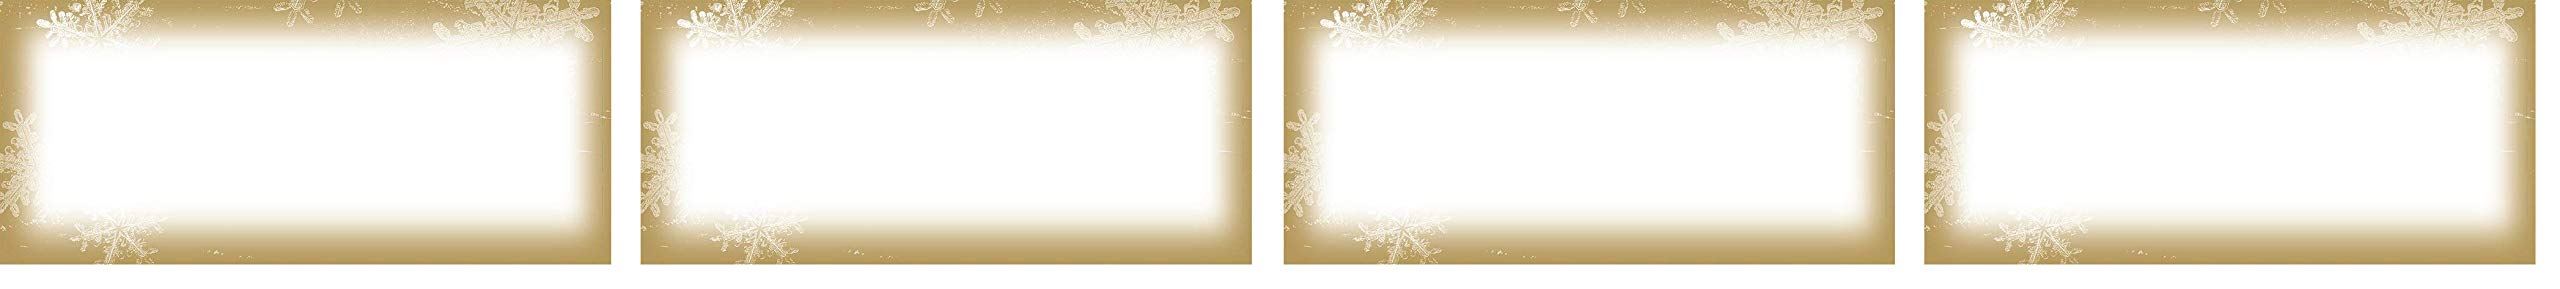 Great Papers! 9.5'' x 4.125'' Imprintable Stationery, Frosted Holiday Wishes (2011608) (Fоur Расk) by Great Papers!